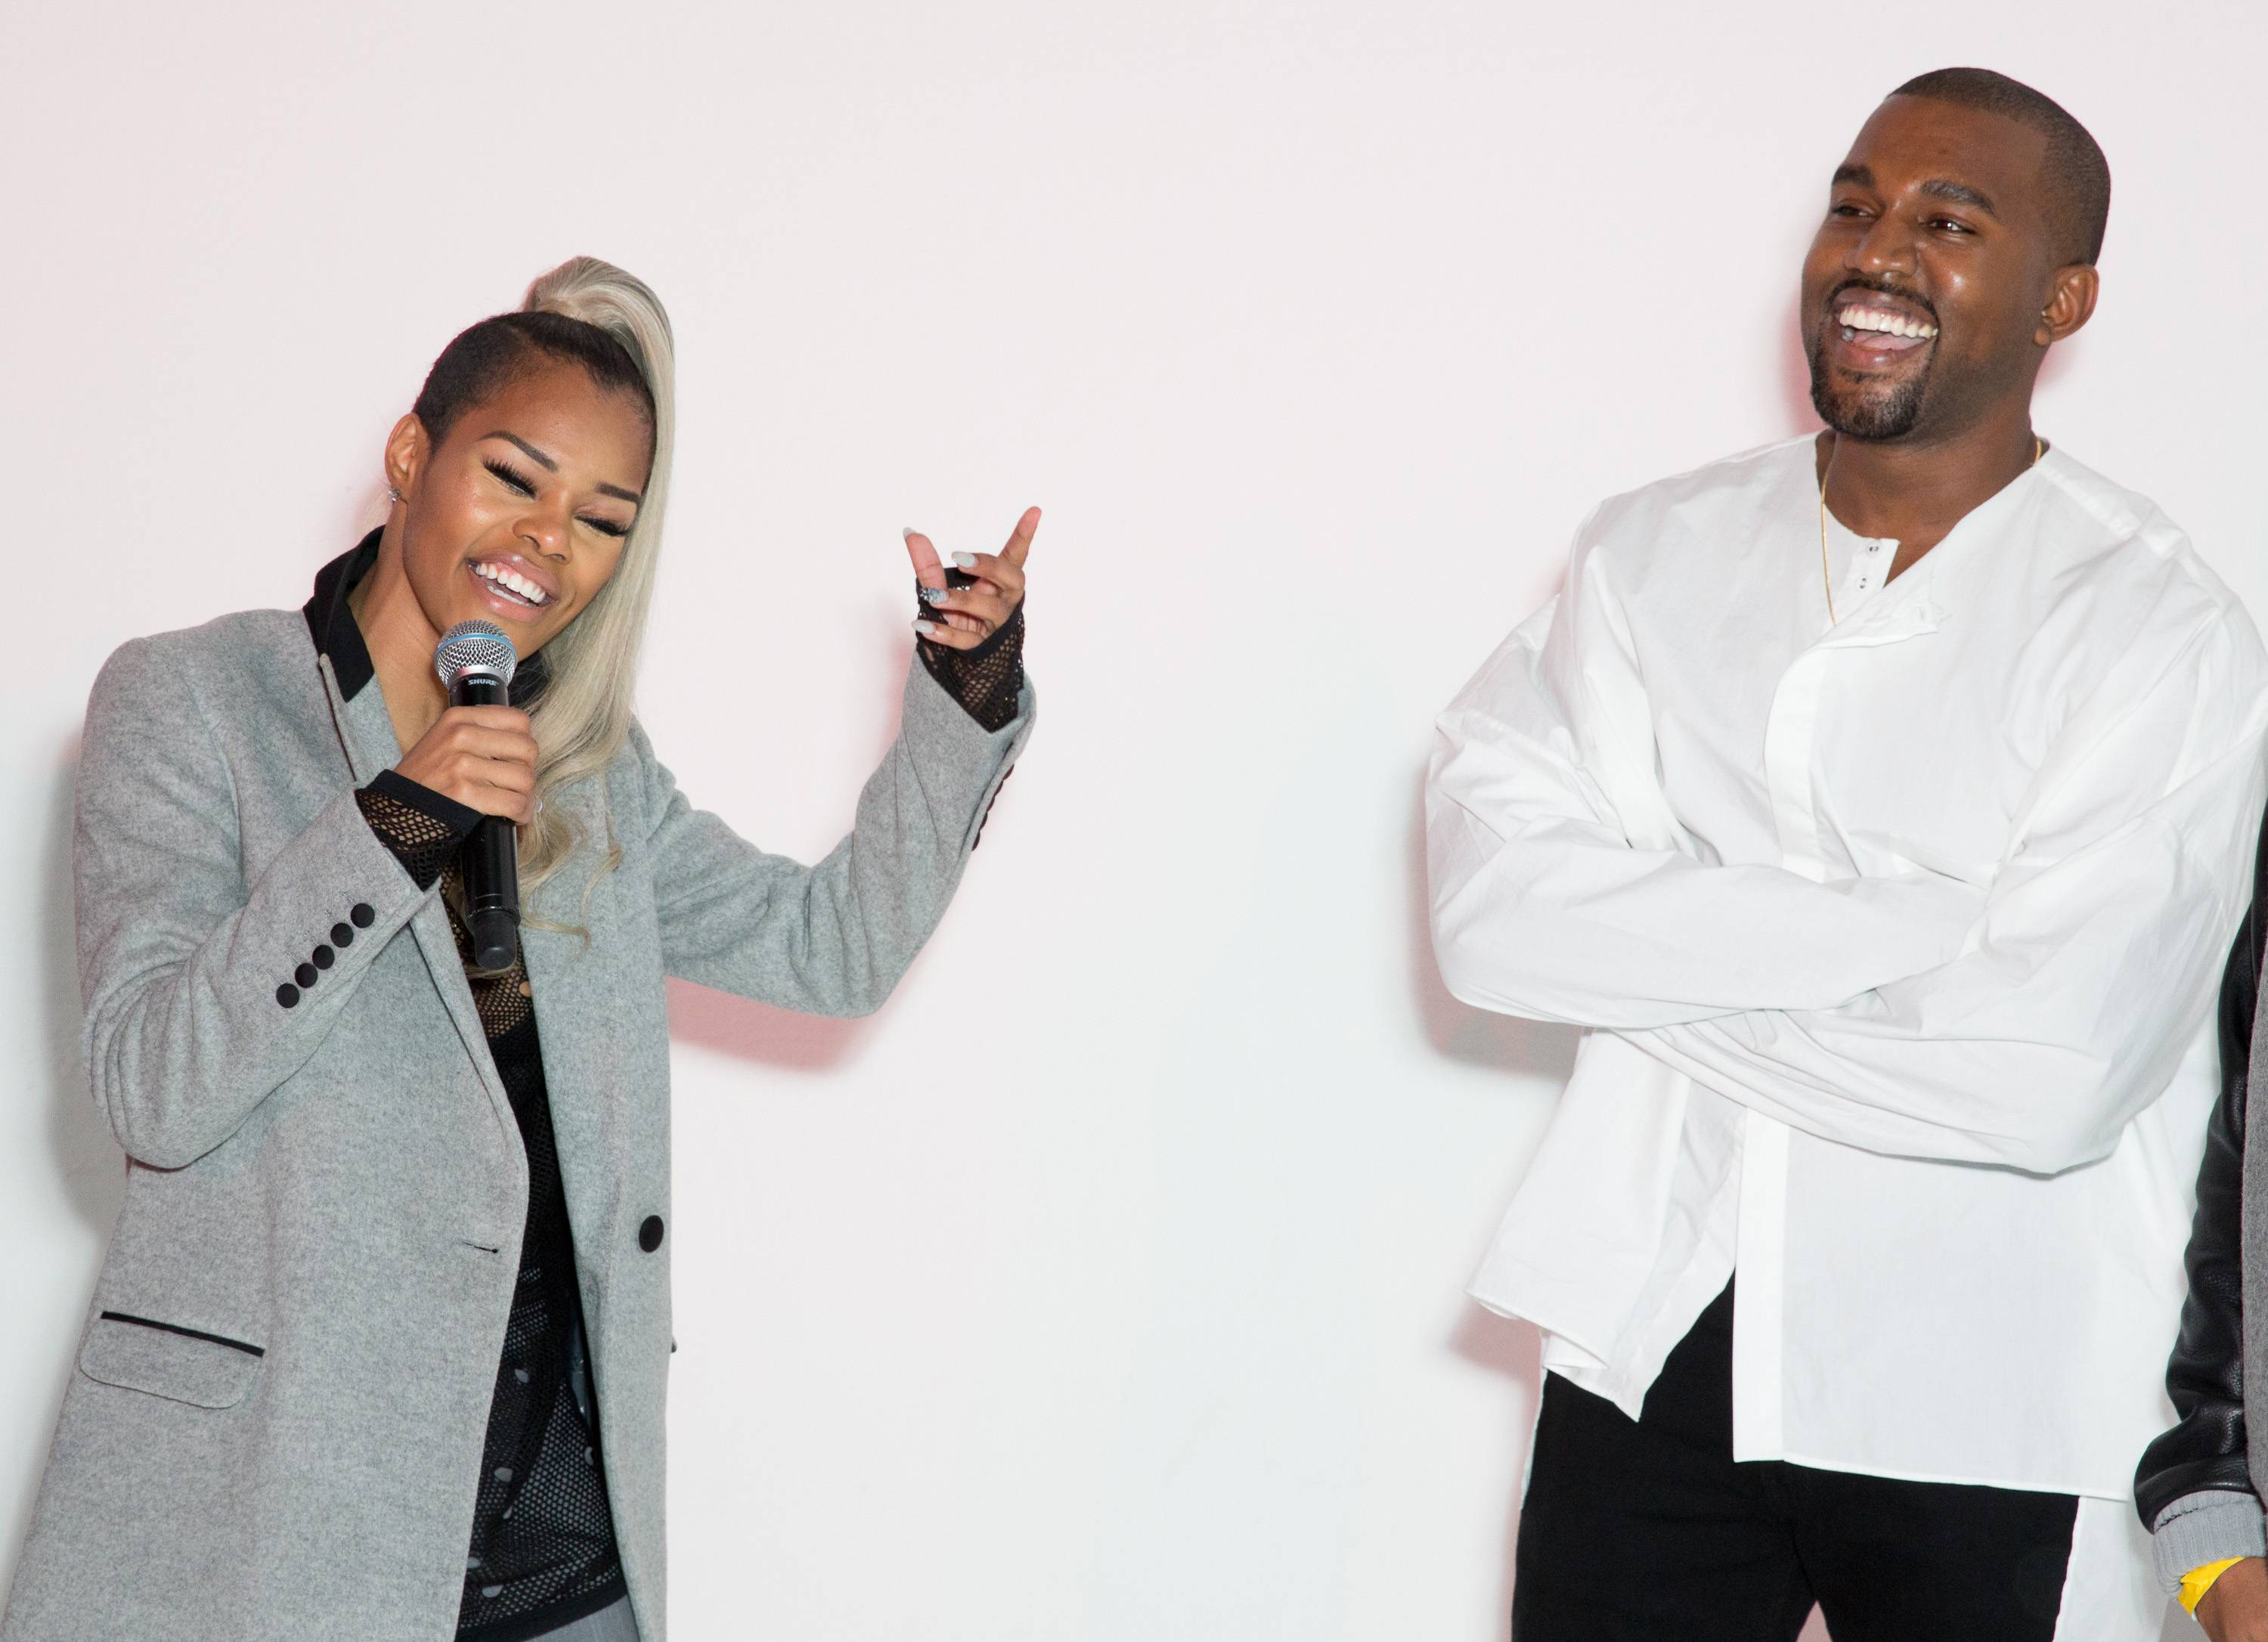 Kanye West Host's Teyana Taylor - Kanye West hosted a Teyana Taylor listening session on Monday nightat Siren Studios in Hollywood, where he gushed about how hard working Taylor is. Here's part of what he said:  What I want to say is, she bust her a** and this is her album. She put all her work into this music. Sometimes, I be a little bit less expressive because motherf**kers want to ?Michael Jackson? me to death and s**t and act like I don?t do nothing positive and all and attack me so I be scared to turn up.provides something that is so R&B, so Black, so hood, so like missing, so necessary in the marketplace and that was what was extremely interesting about what she did on Teyana Dark Fantasy motherf**kers wanted to drop Teyana  everybody always wanna drop somebody and s**t and not believe in somebody all the way through, so I?ma just go ahead and be ?Ye a...